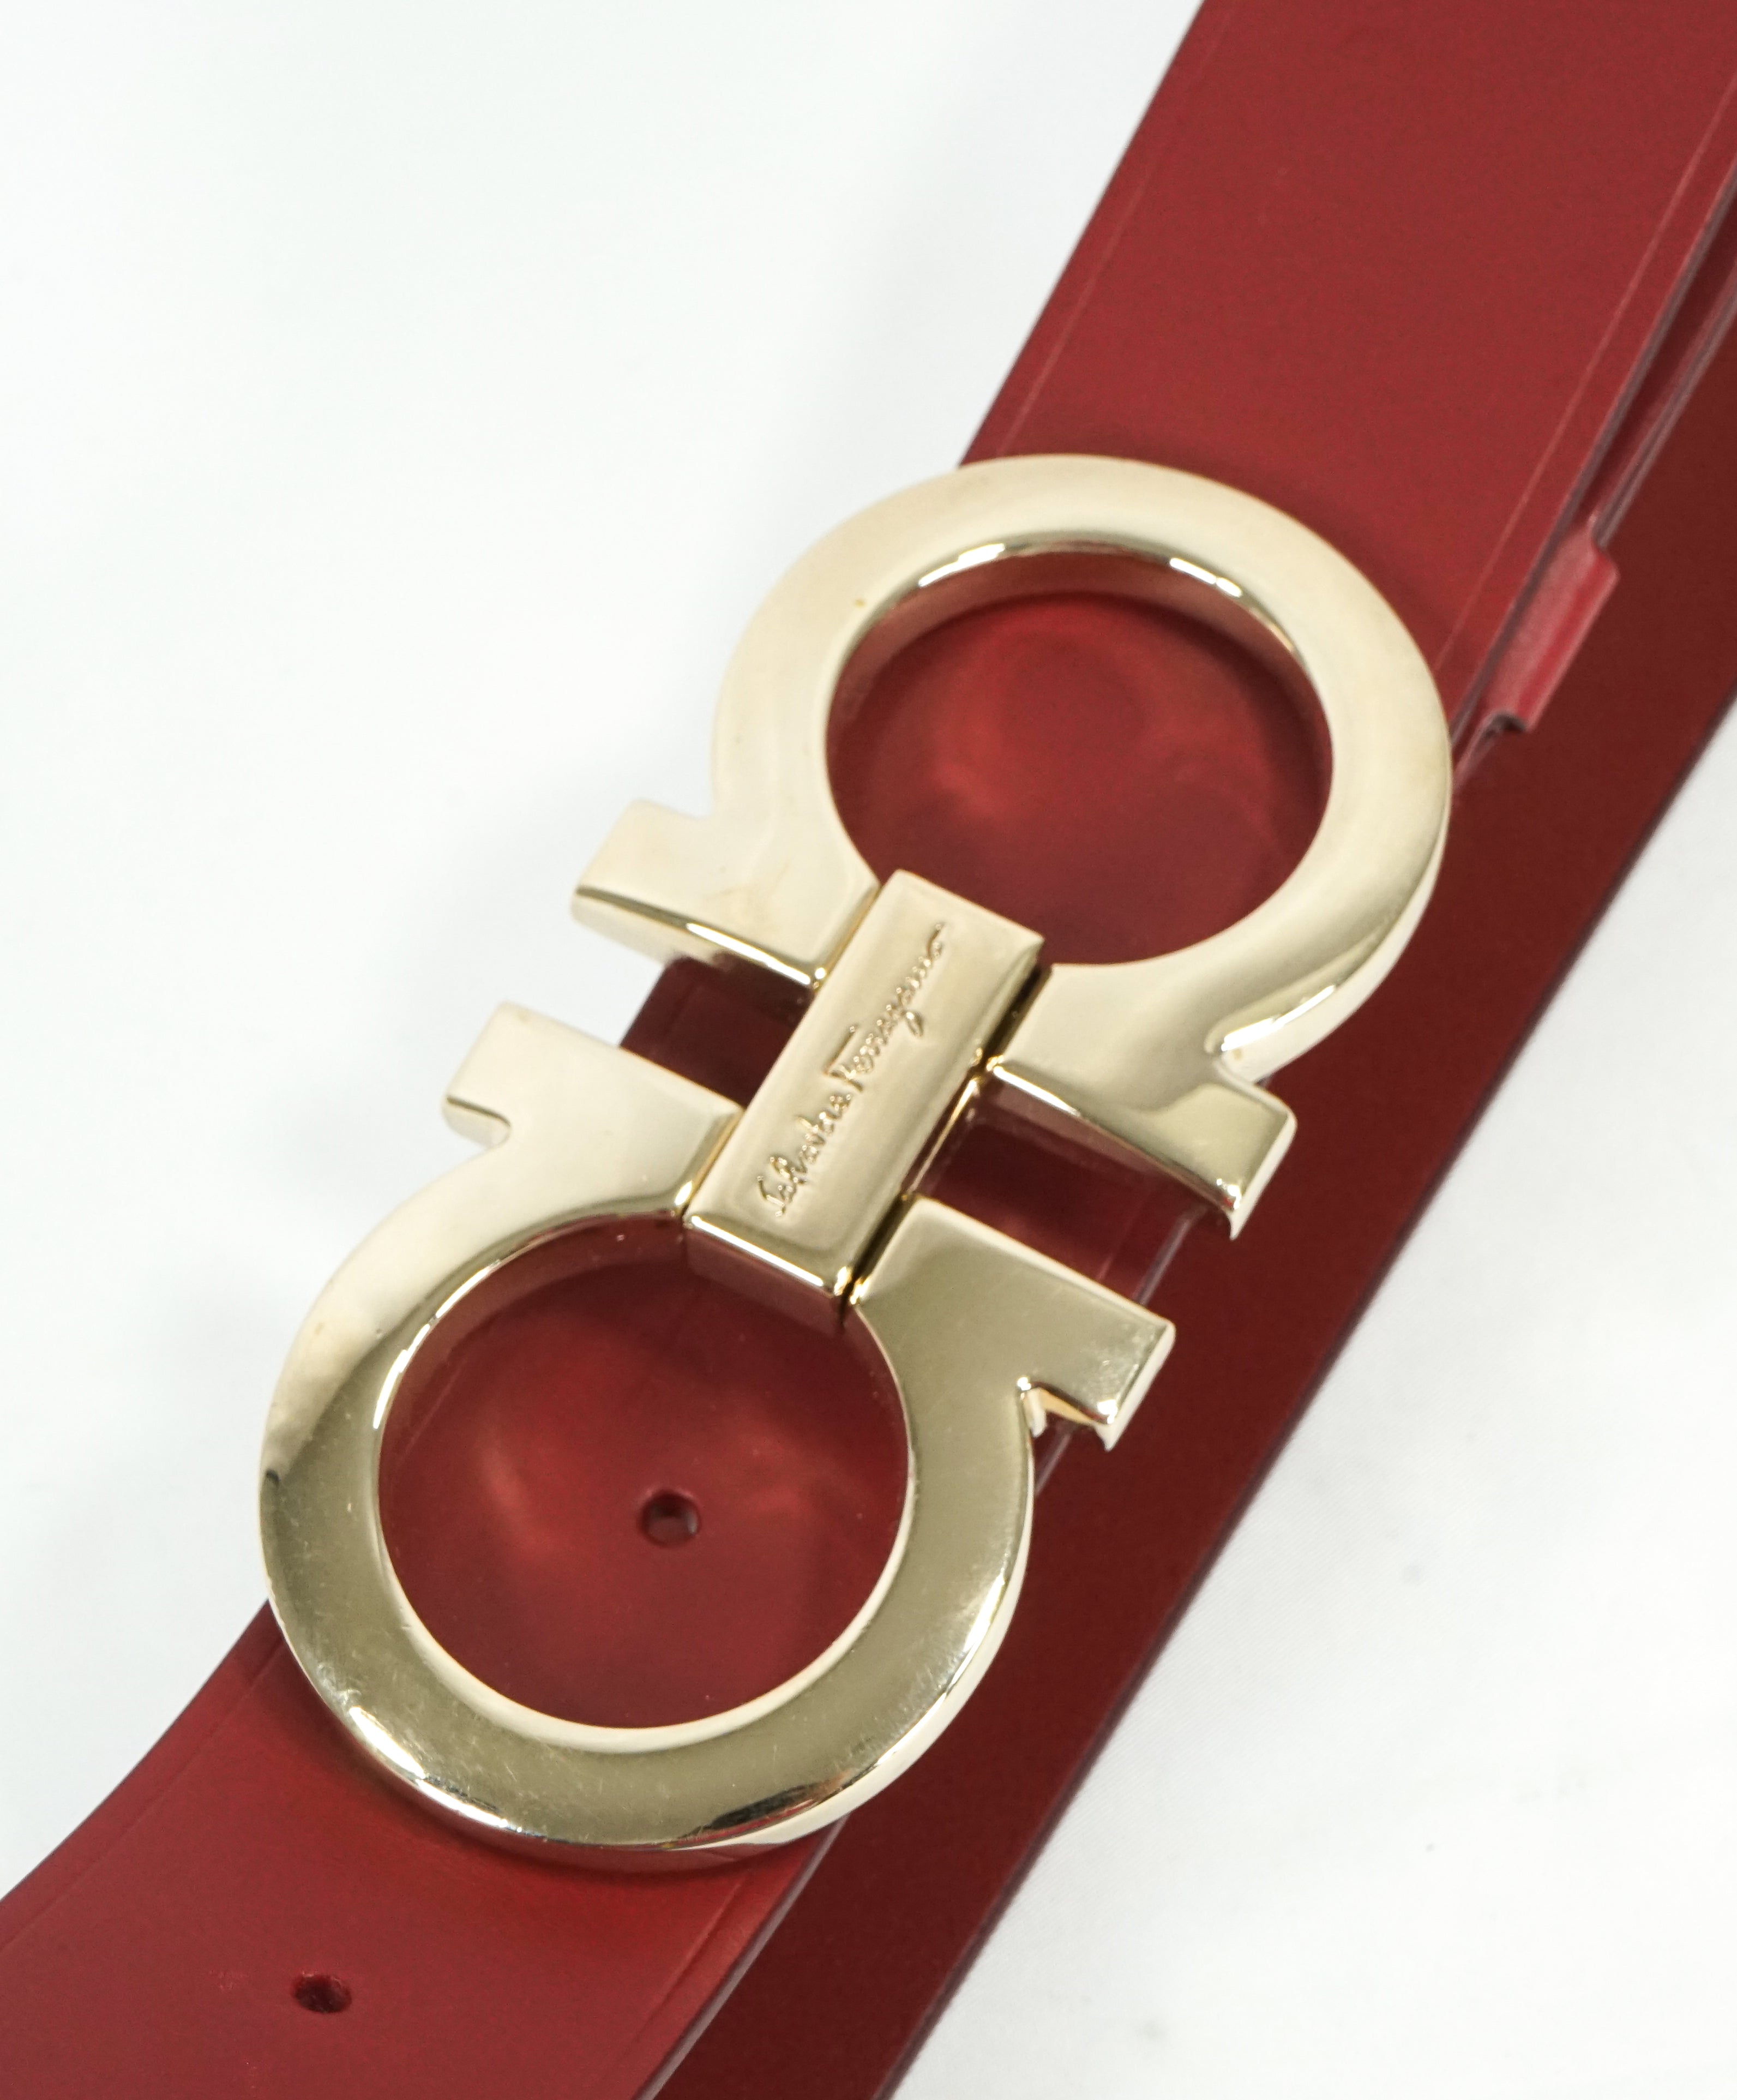 SALVATORE FERRAGAMO - Red & Gold Oversized Leather Gancini Belt - 38W